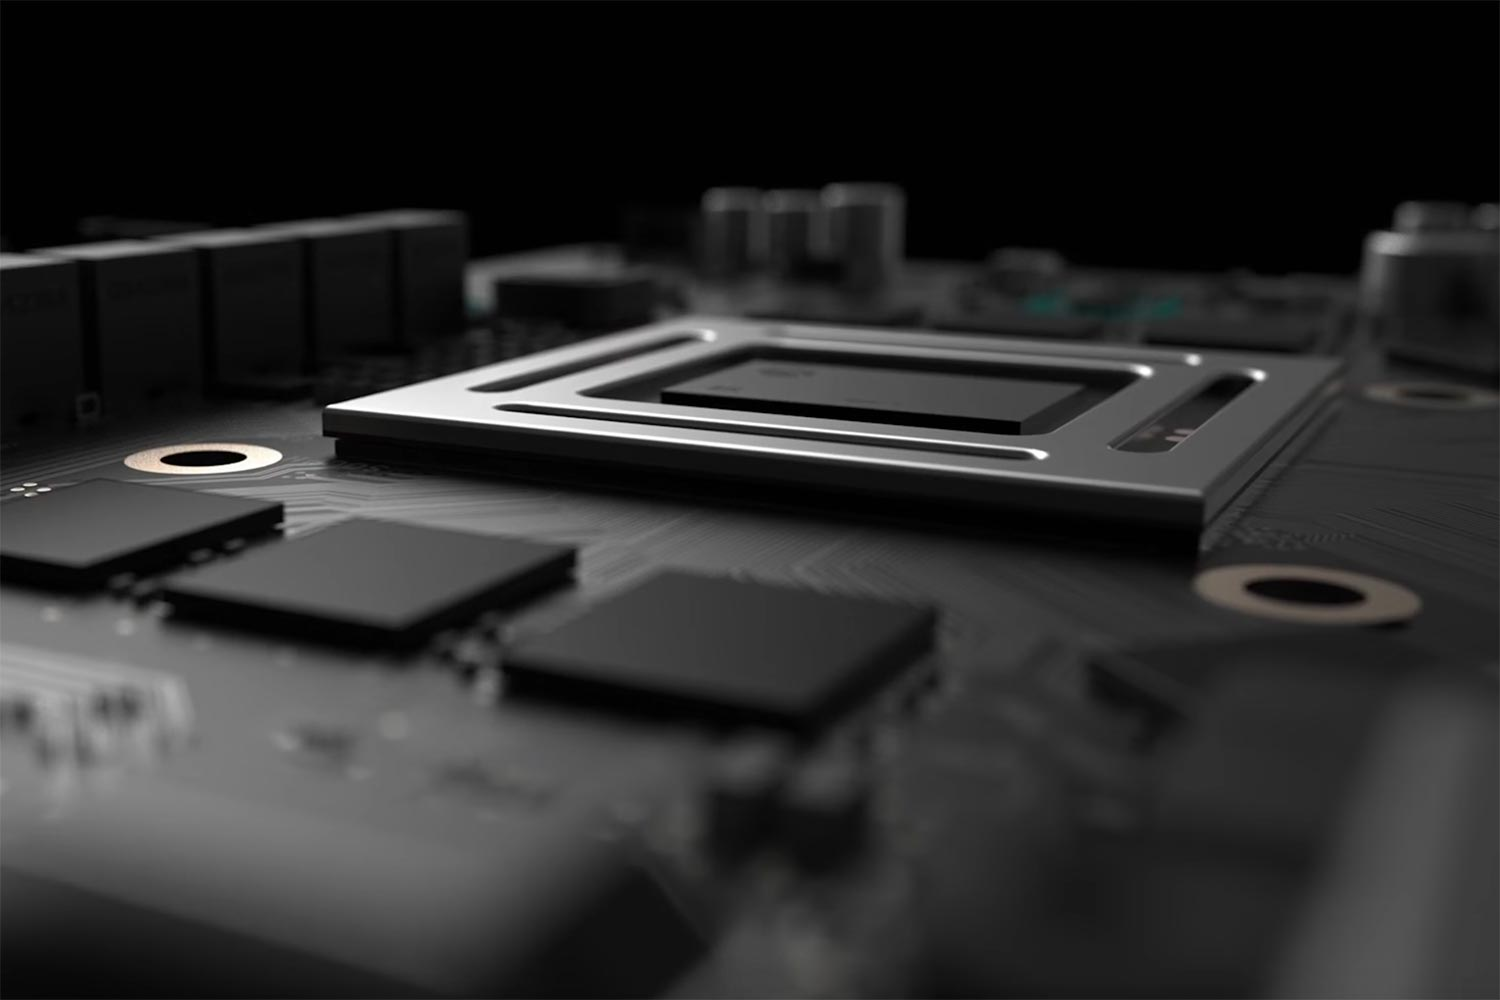 Project Scorpio to be unveiled at E3 2017, Phil Spencer confirms